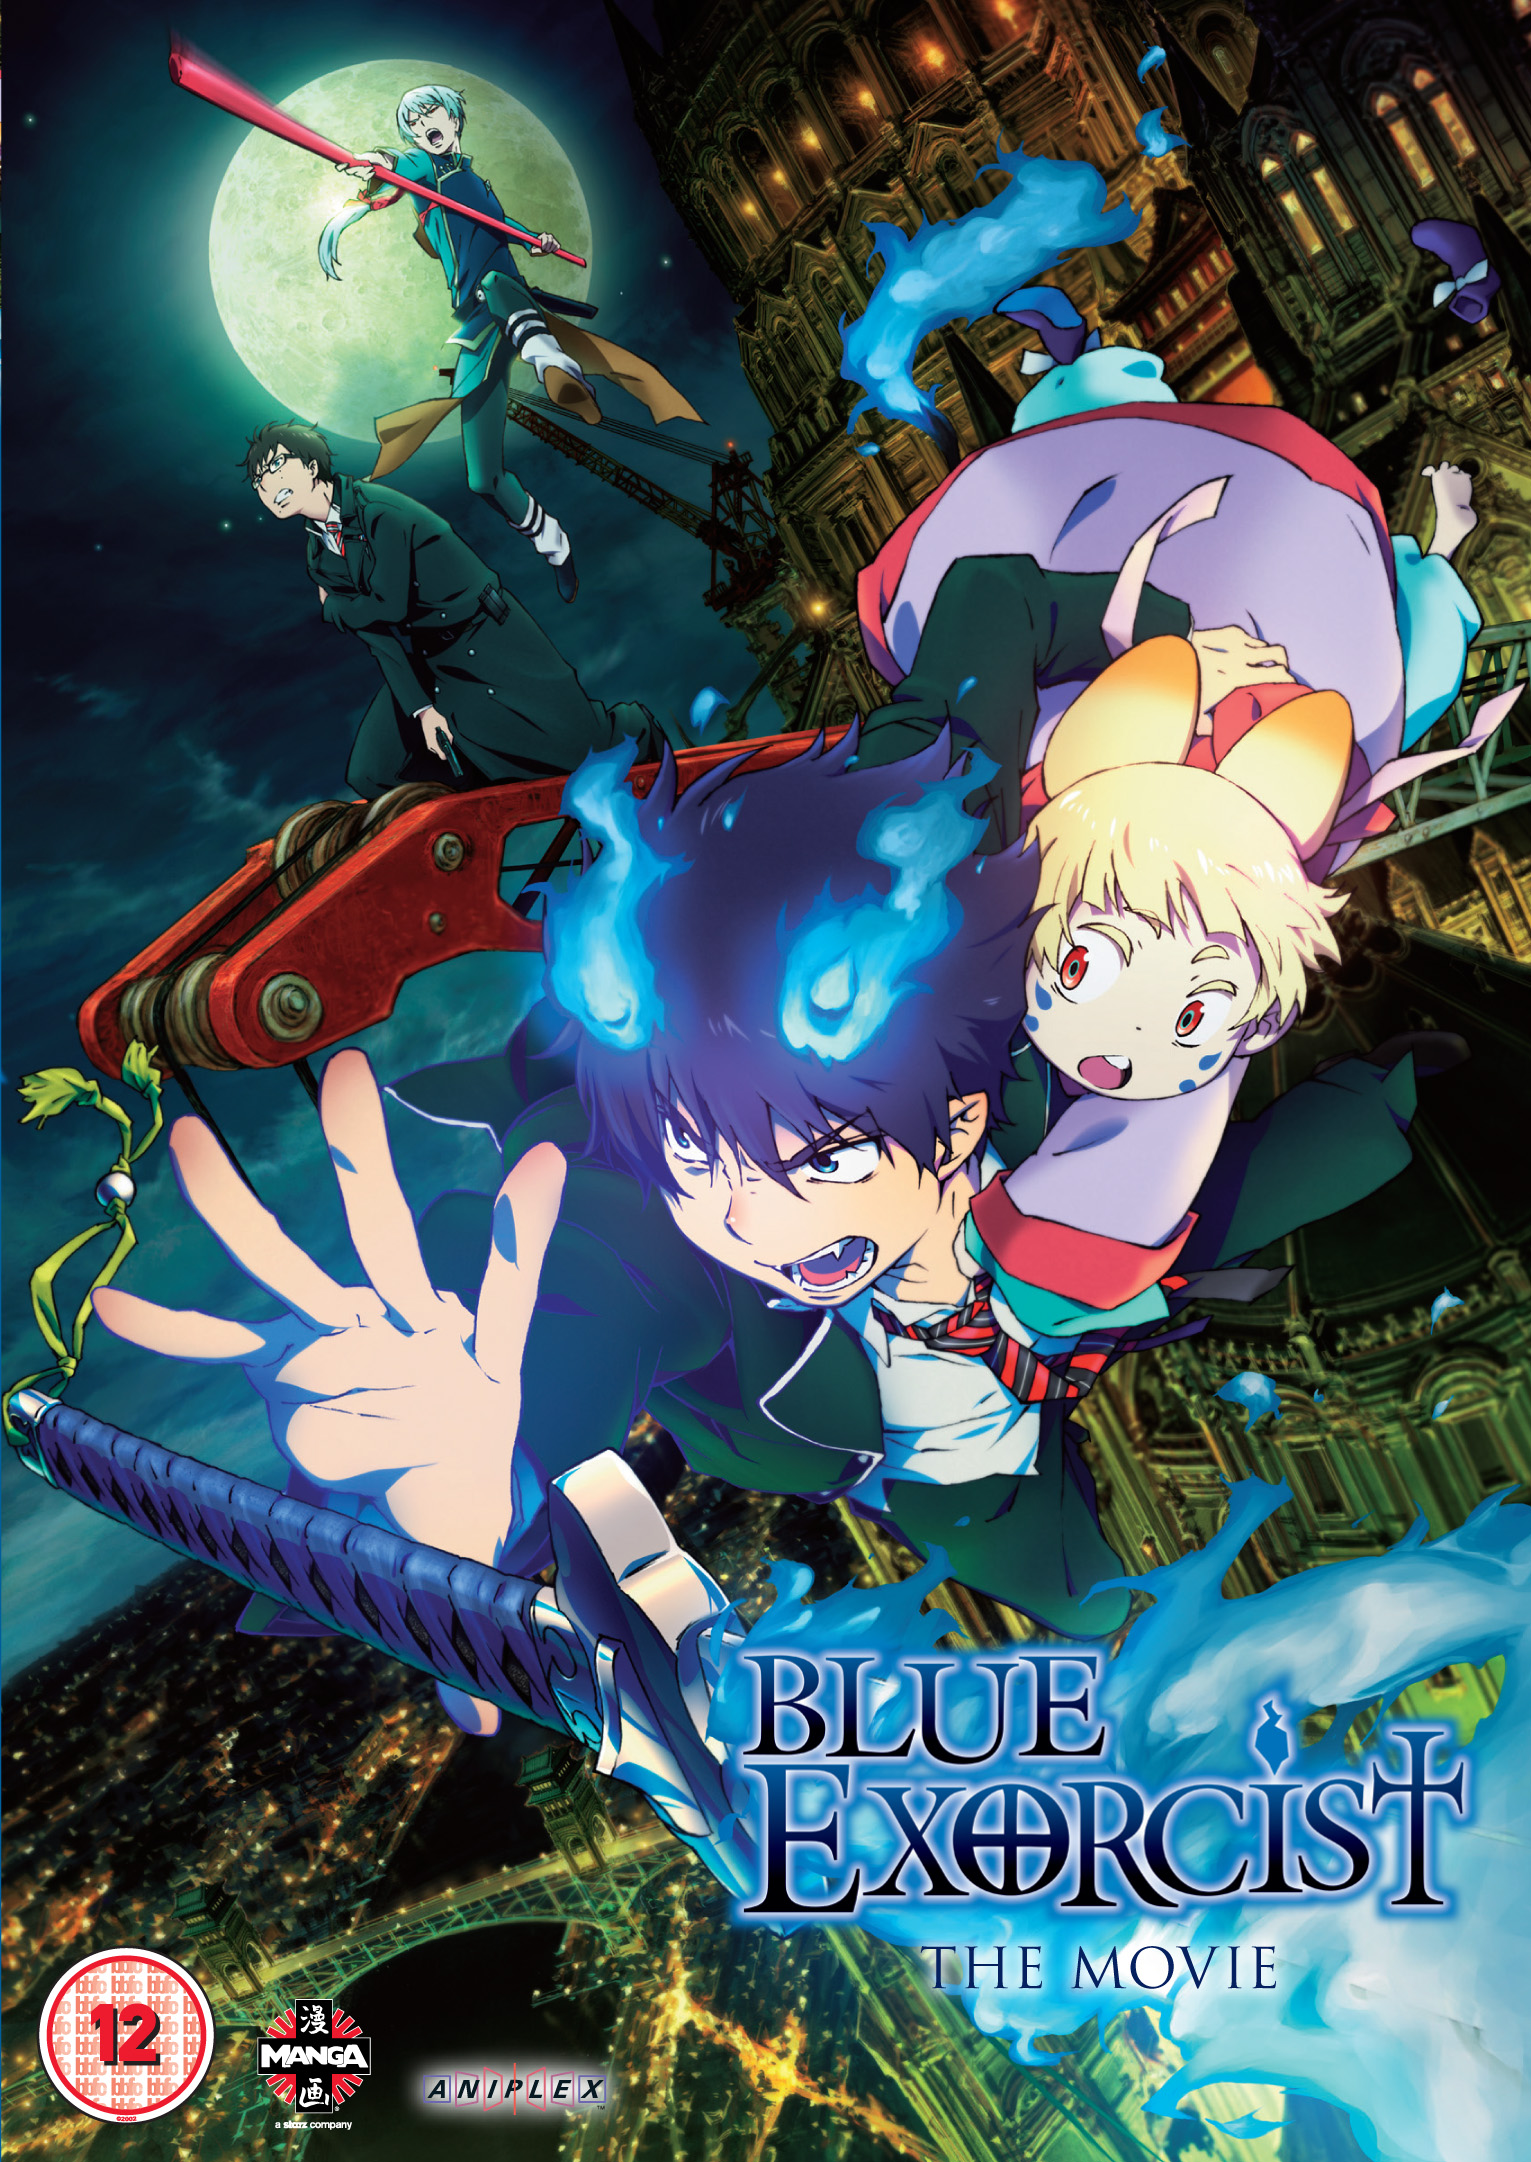 MANG5337_DVD_Blue_Exorcist_Movie_2D